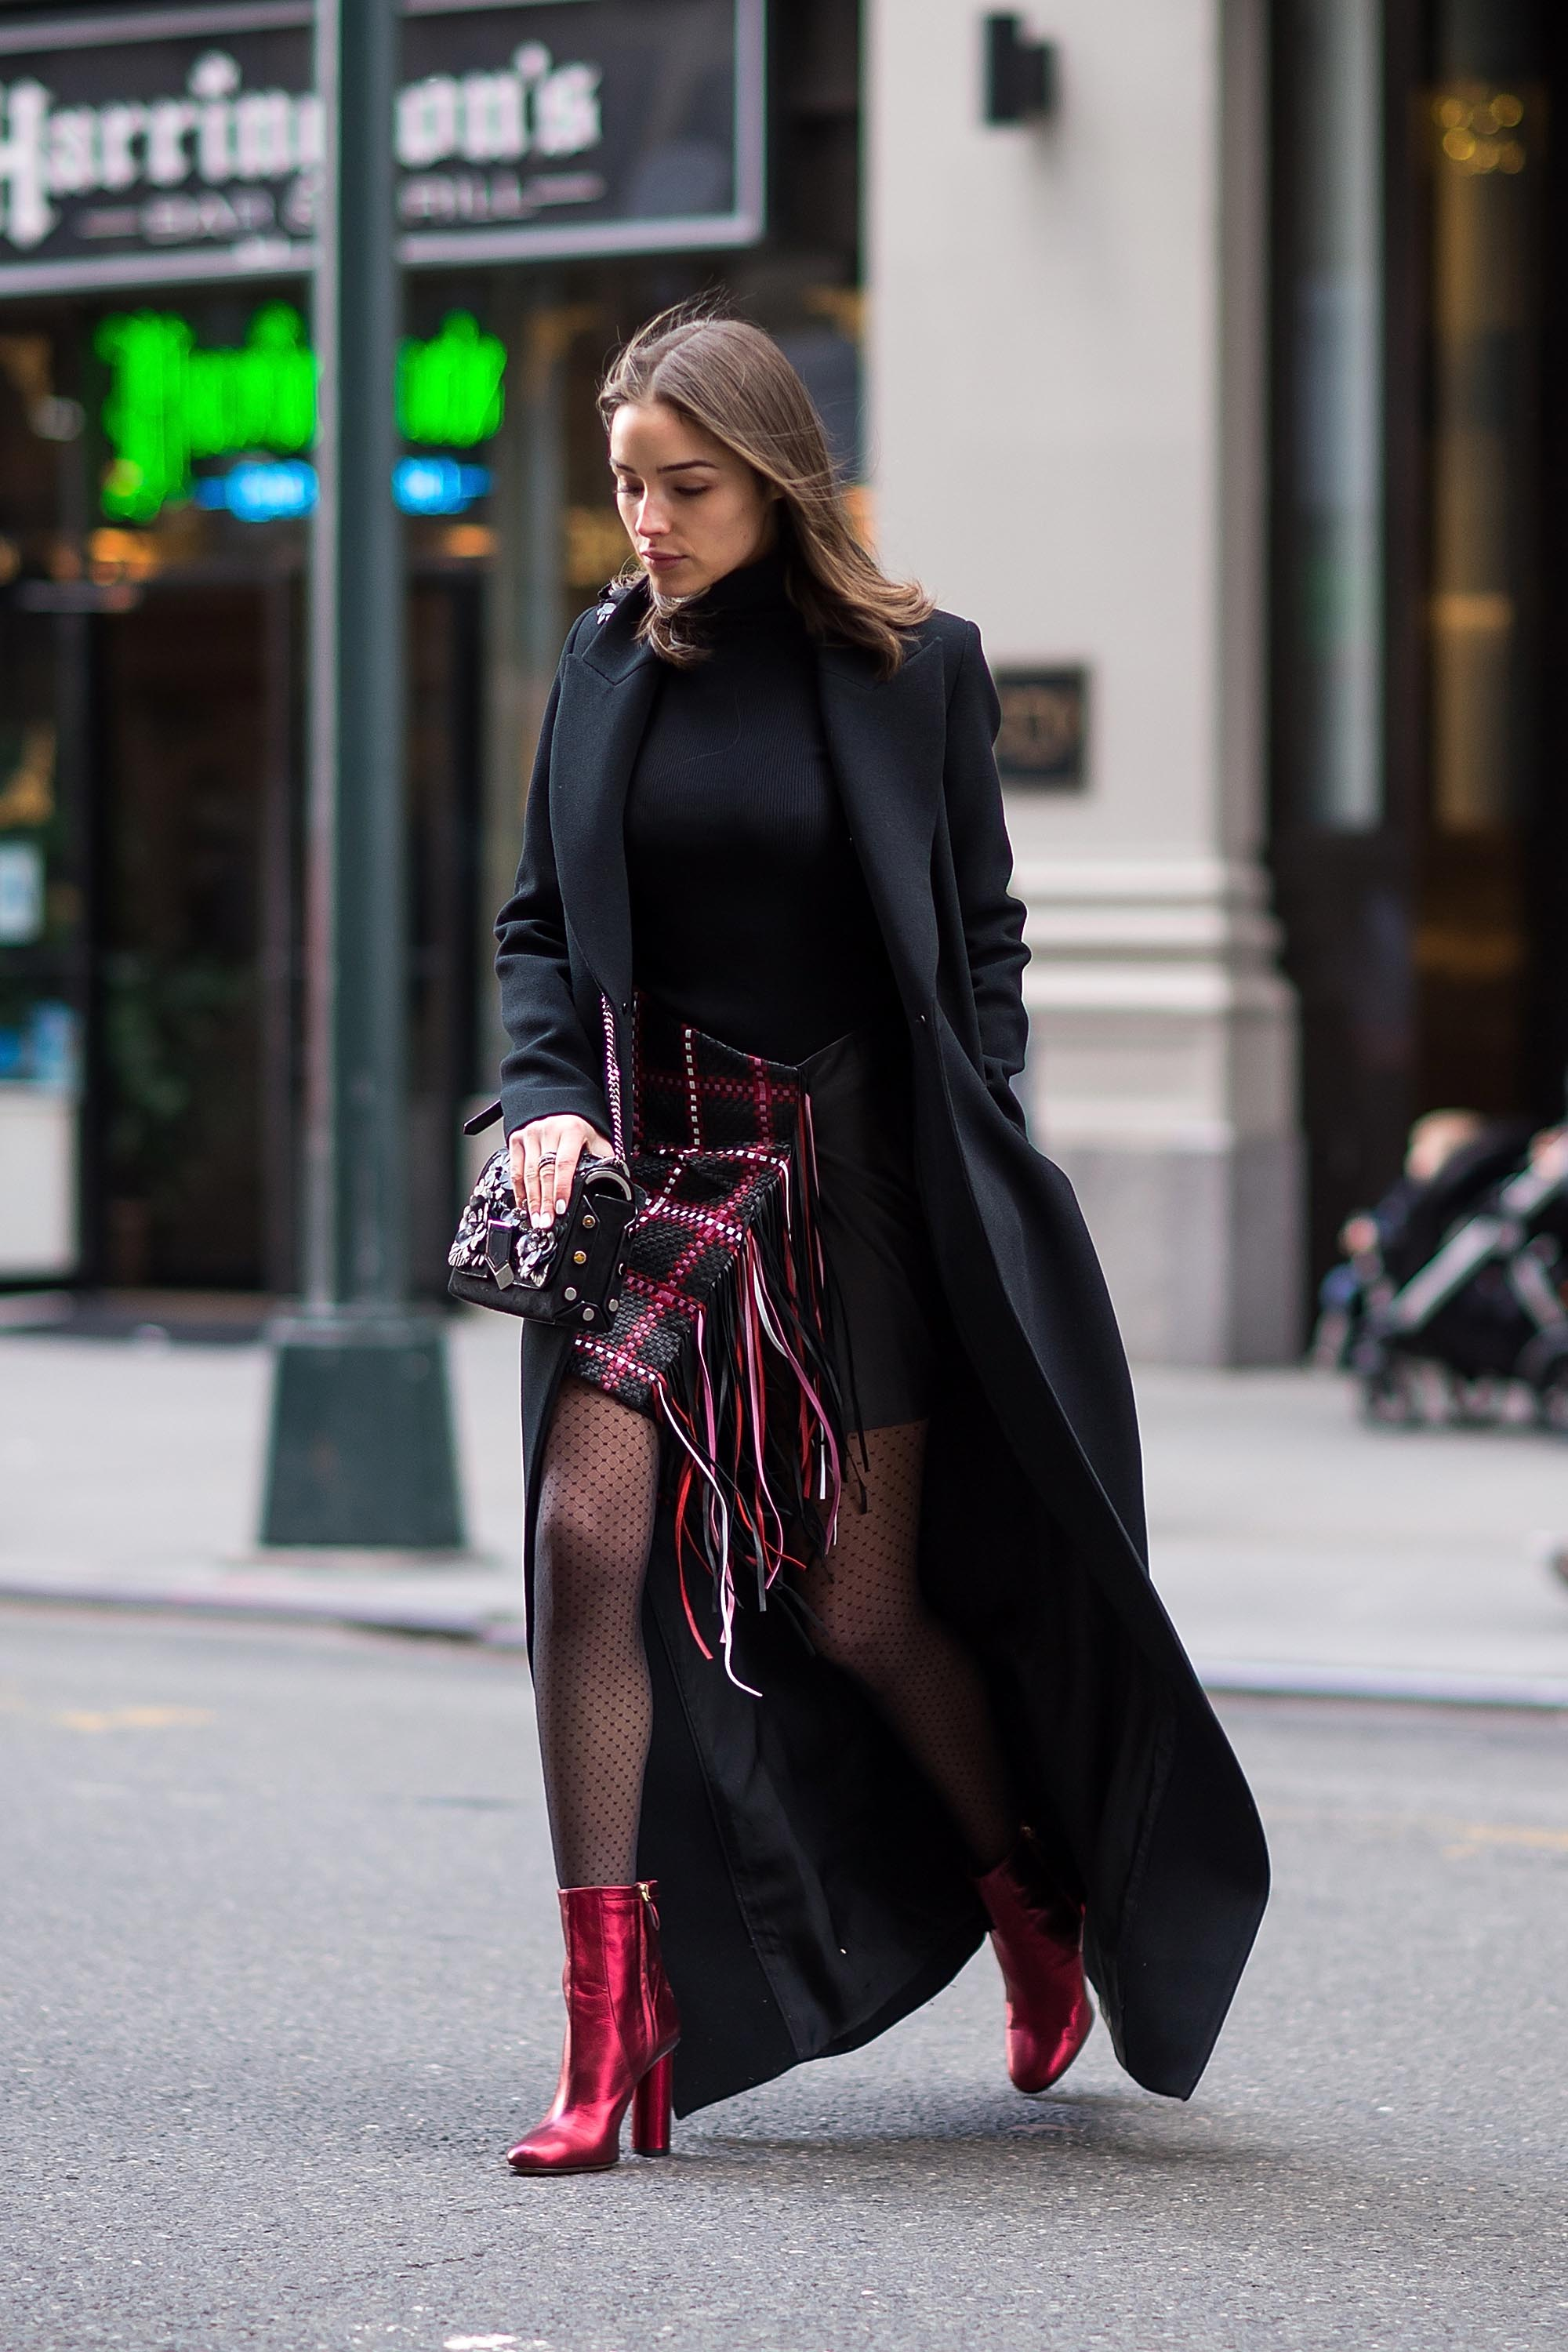 Olivia Culpo is seen in Midtown NYC